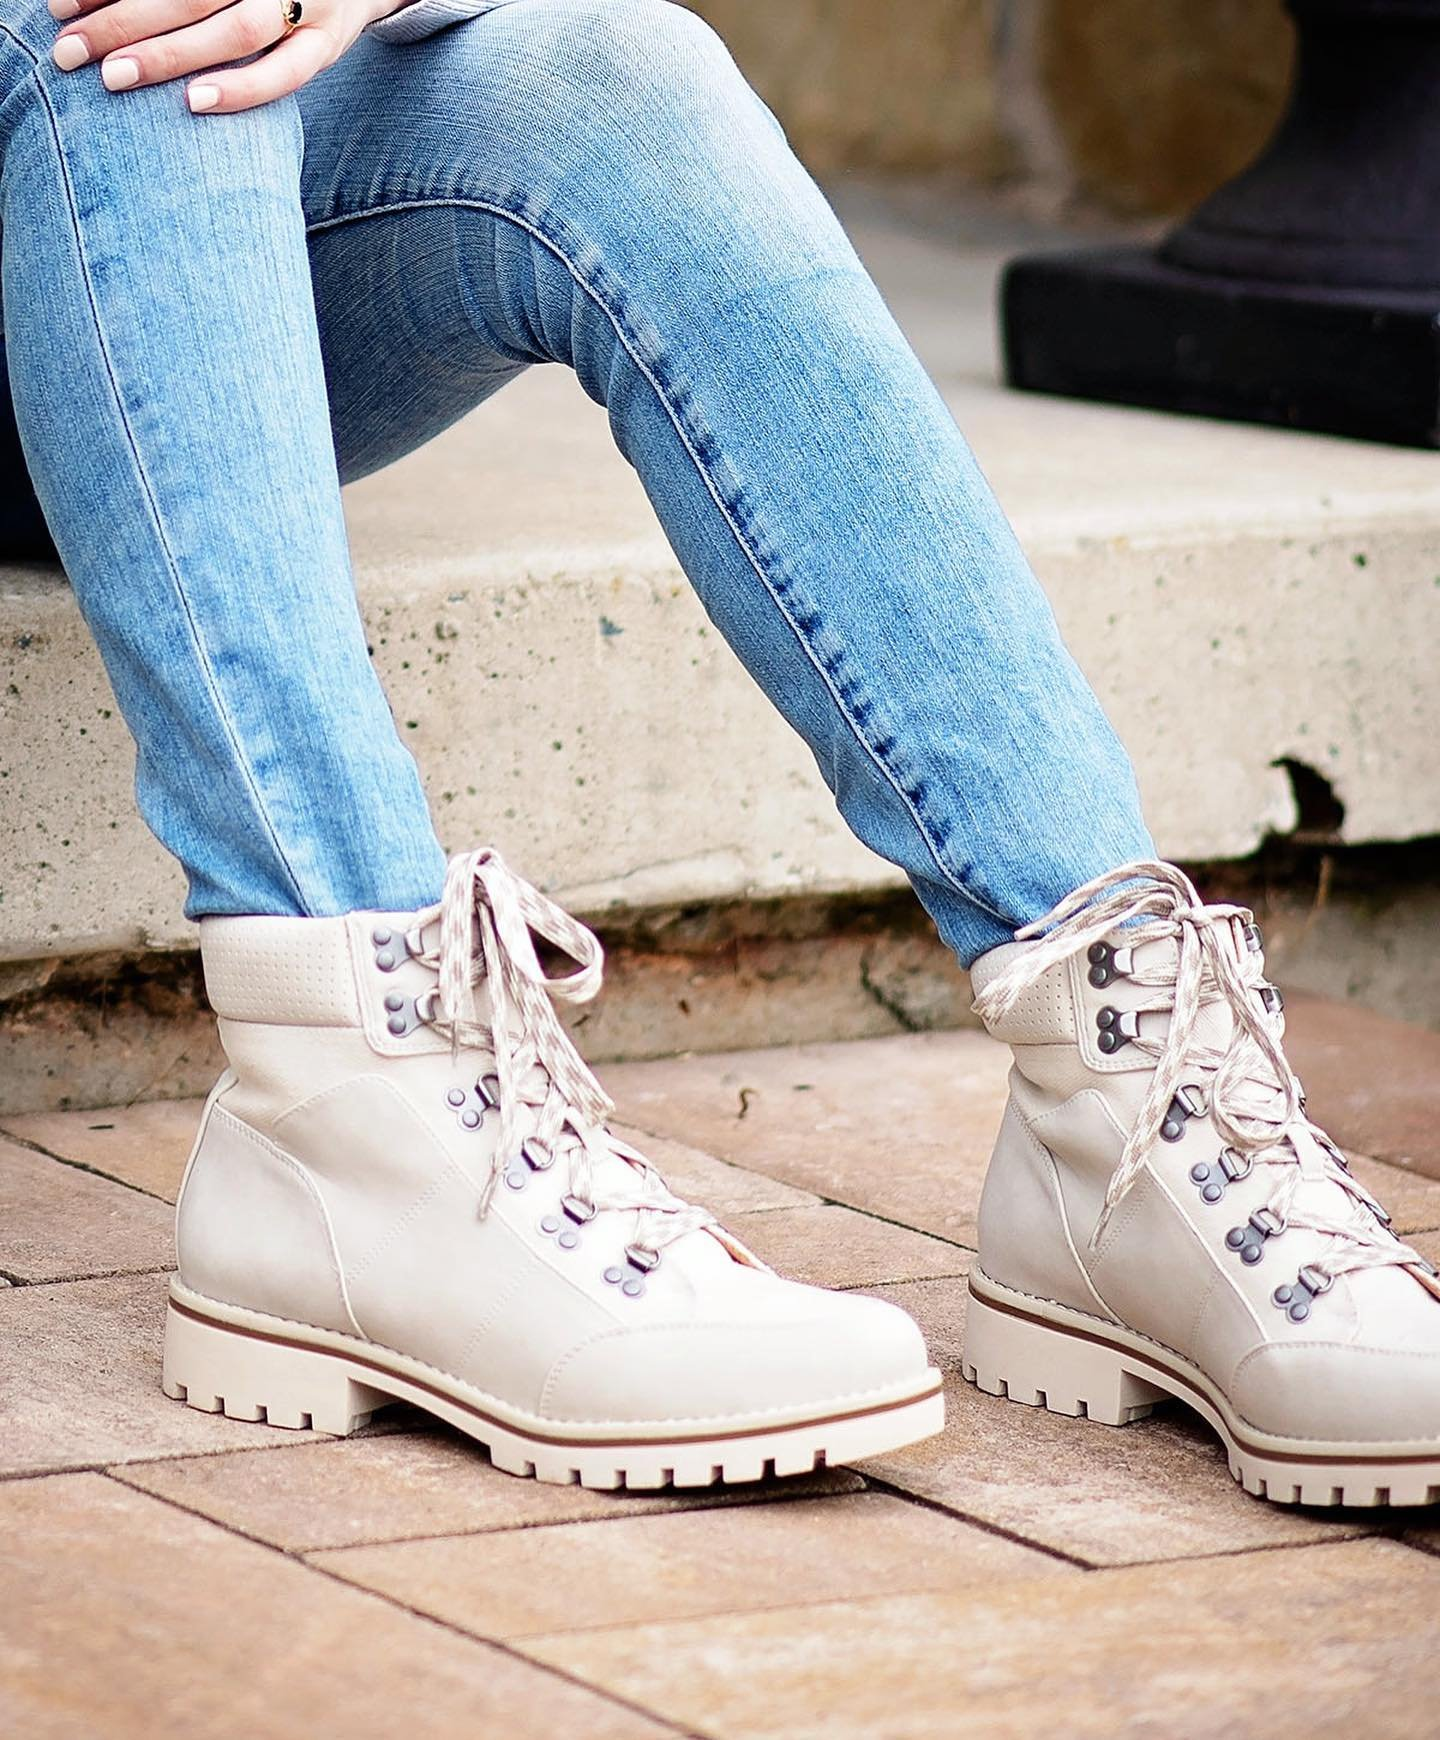 Boots are Back this Fall!